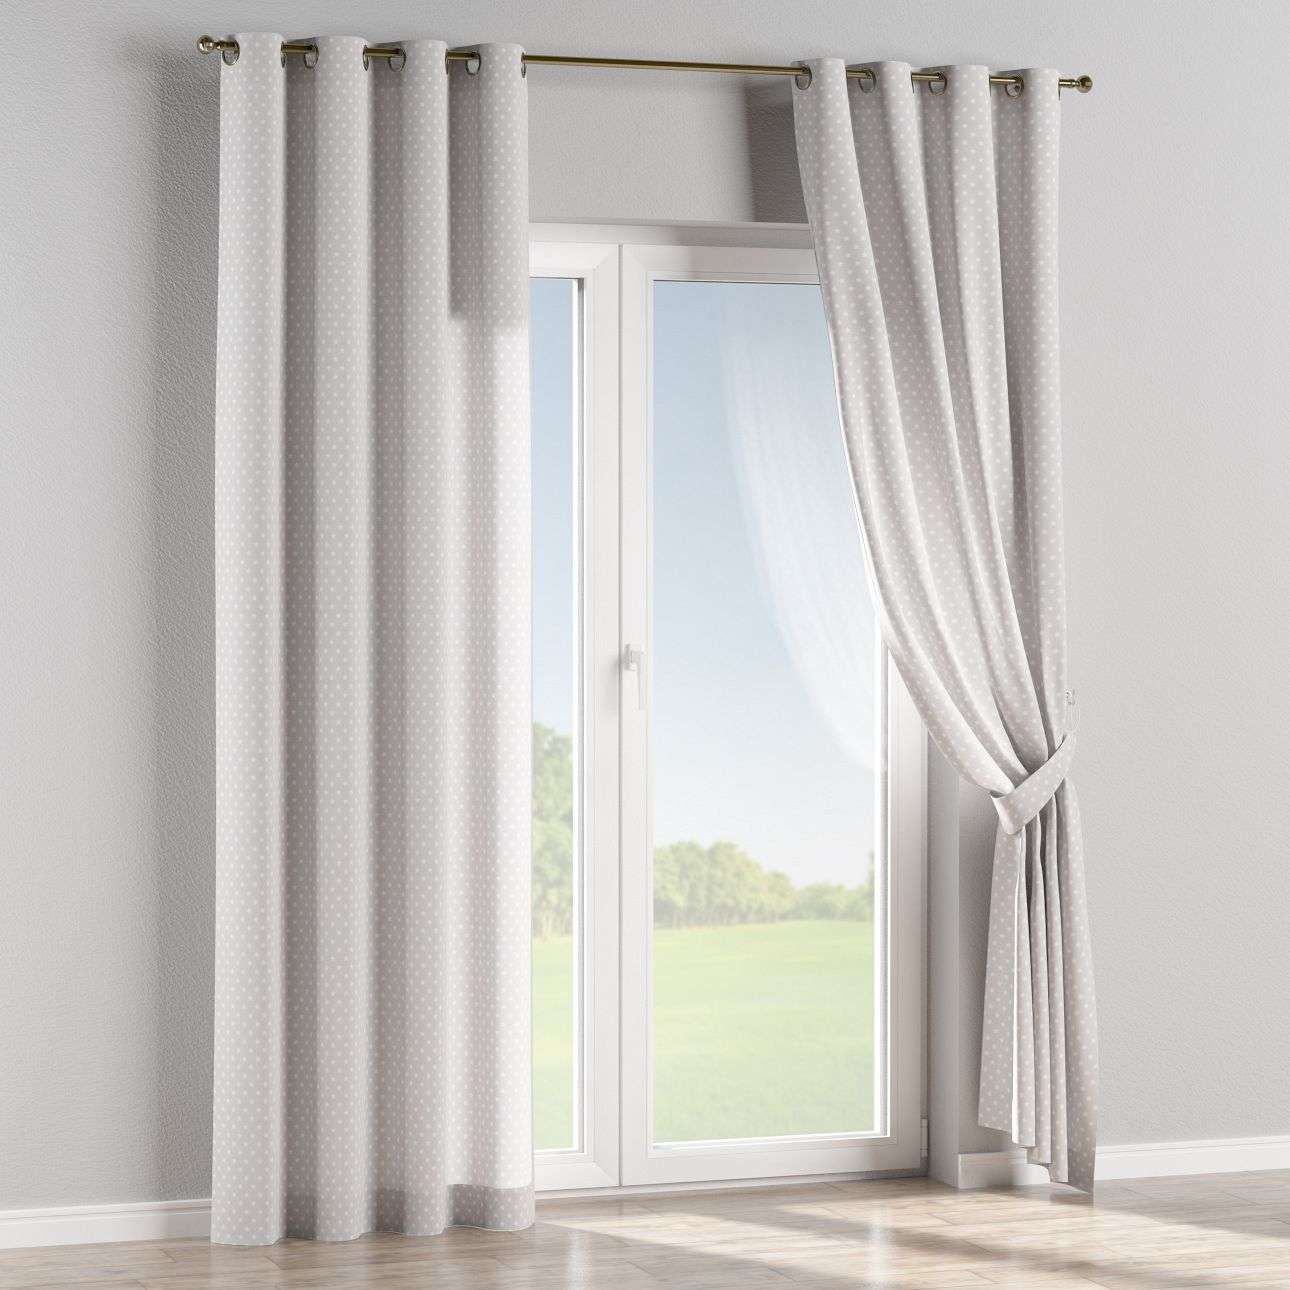 Eyelet curtains 130 x 260 cm (51 x 102 inch) in collection Ashley, fabric: 137-67